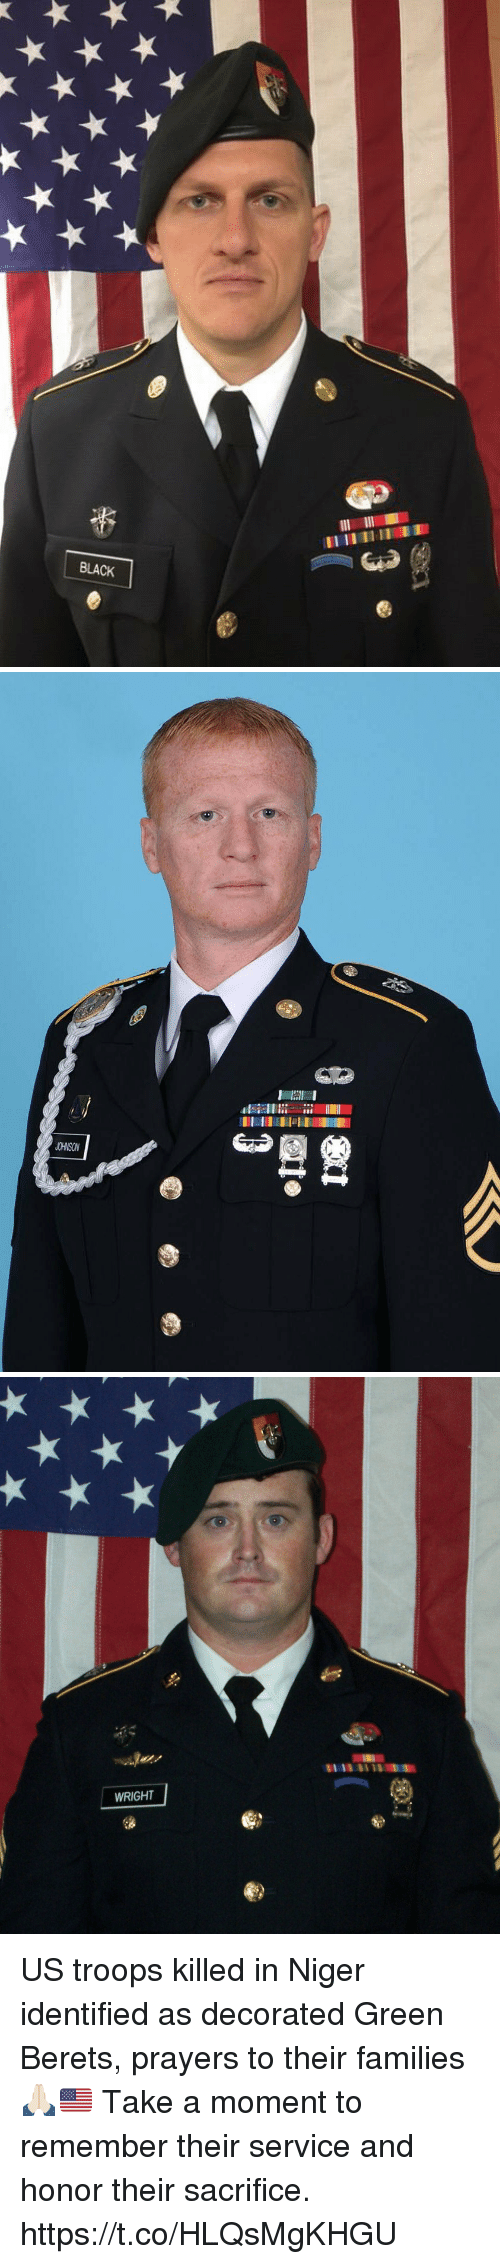 Memes, Black, and 🤖: BLACK   12  JOHNSON   WRIGHT US troops killed in Niger identified as decorated Green Berets, prayers to their families 🙏🏻🇺🇸 Take a moment to remember their service and honor their sacrifice. https://t.co/HLQsMgKHGU